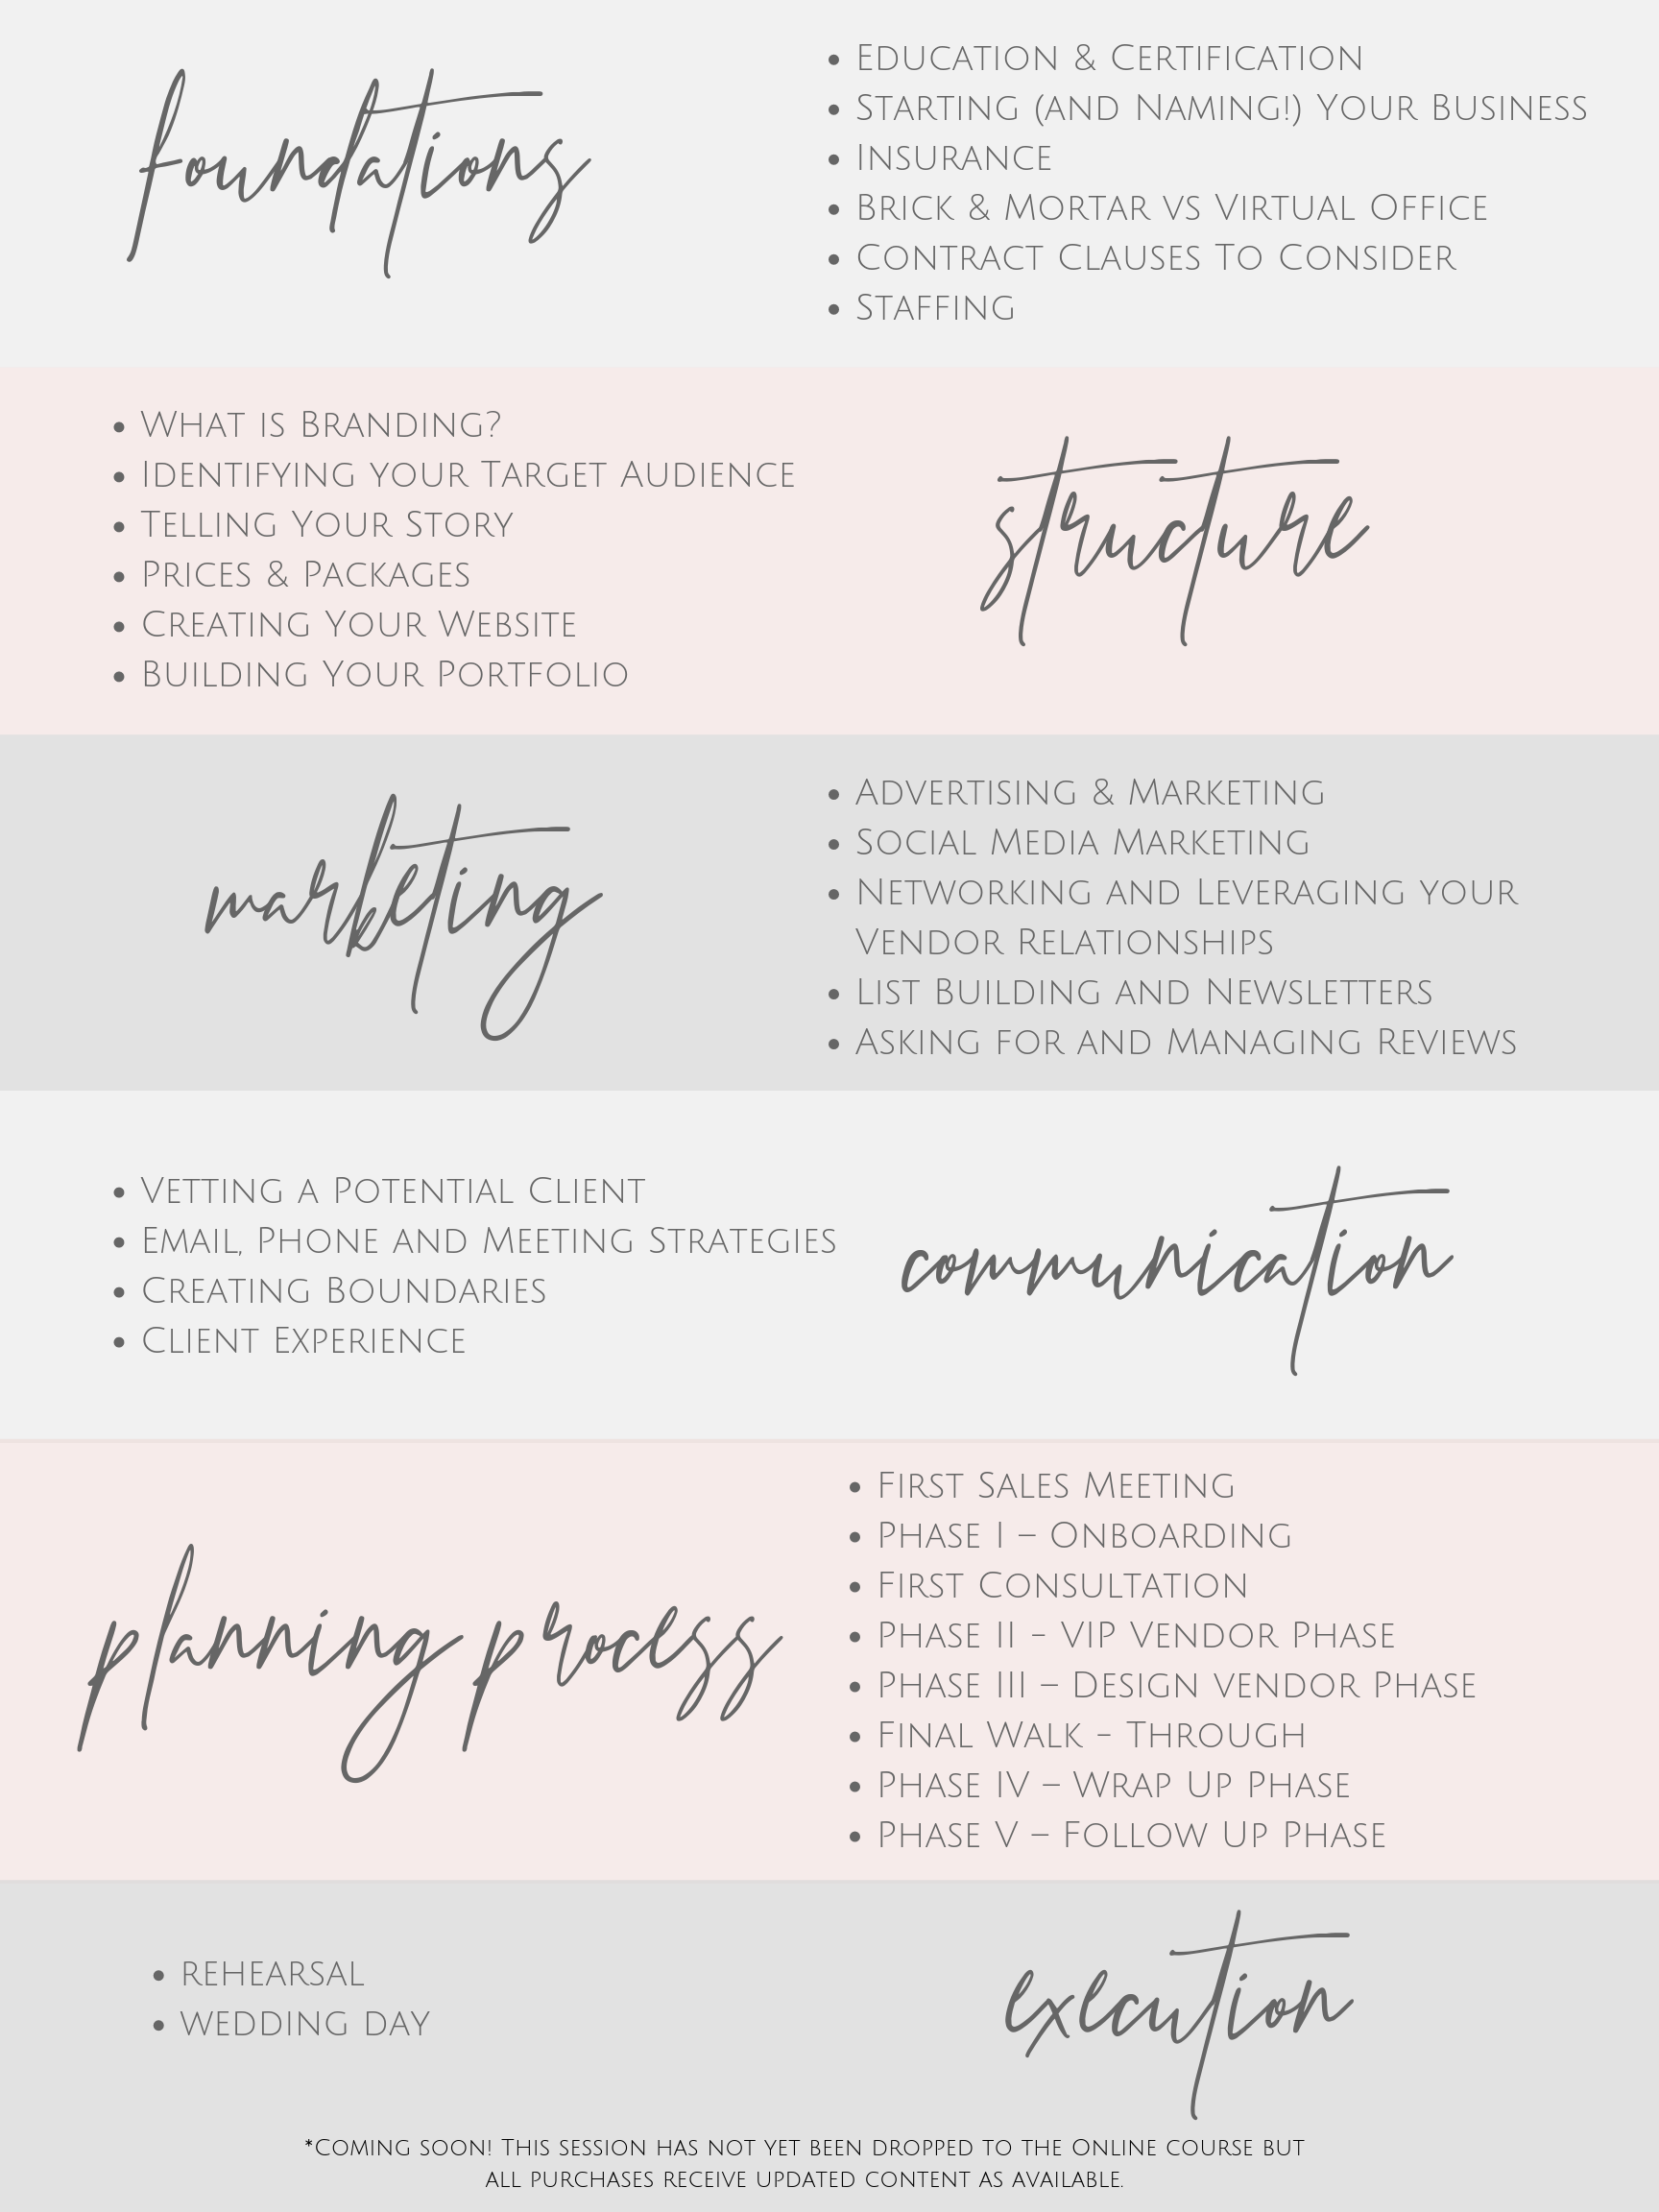 how to become a wedding planner?